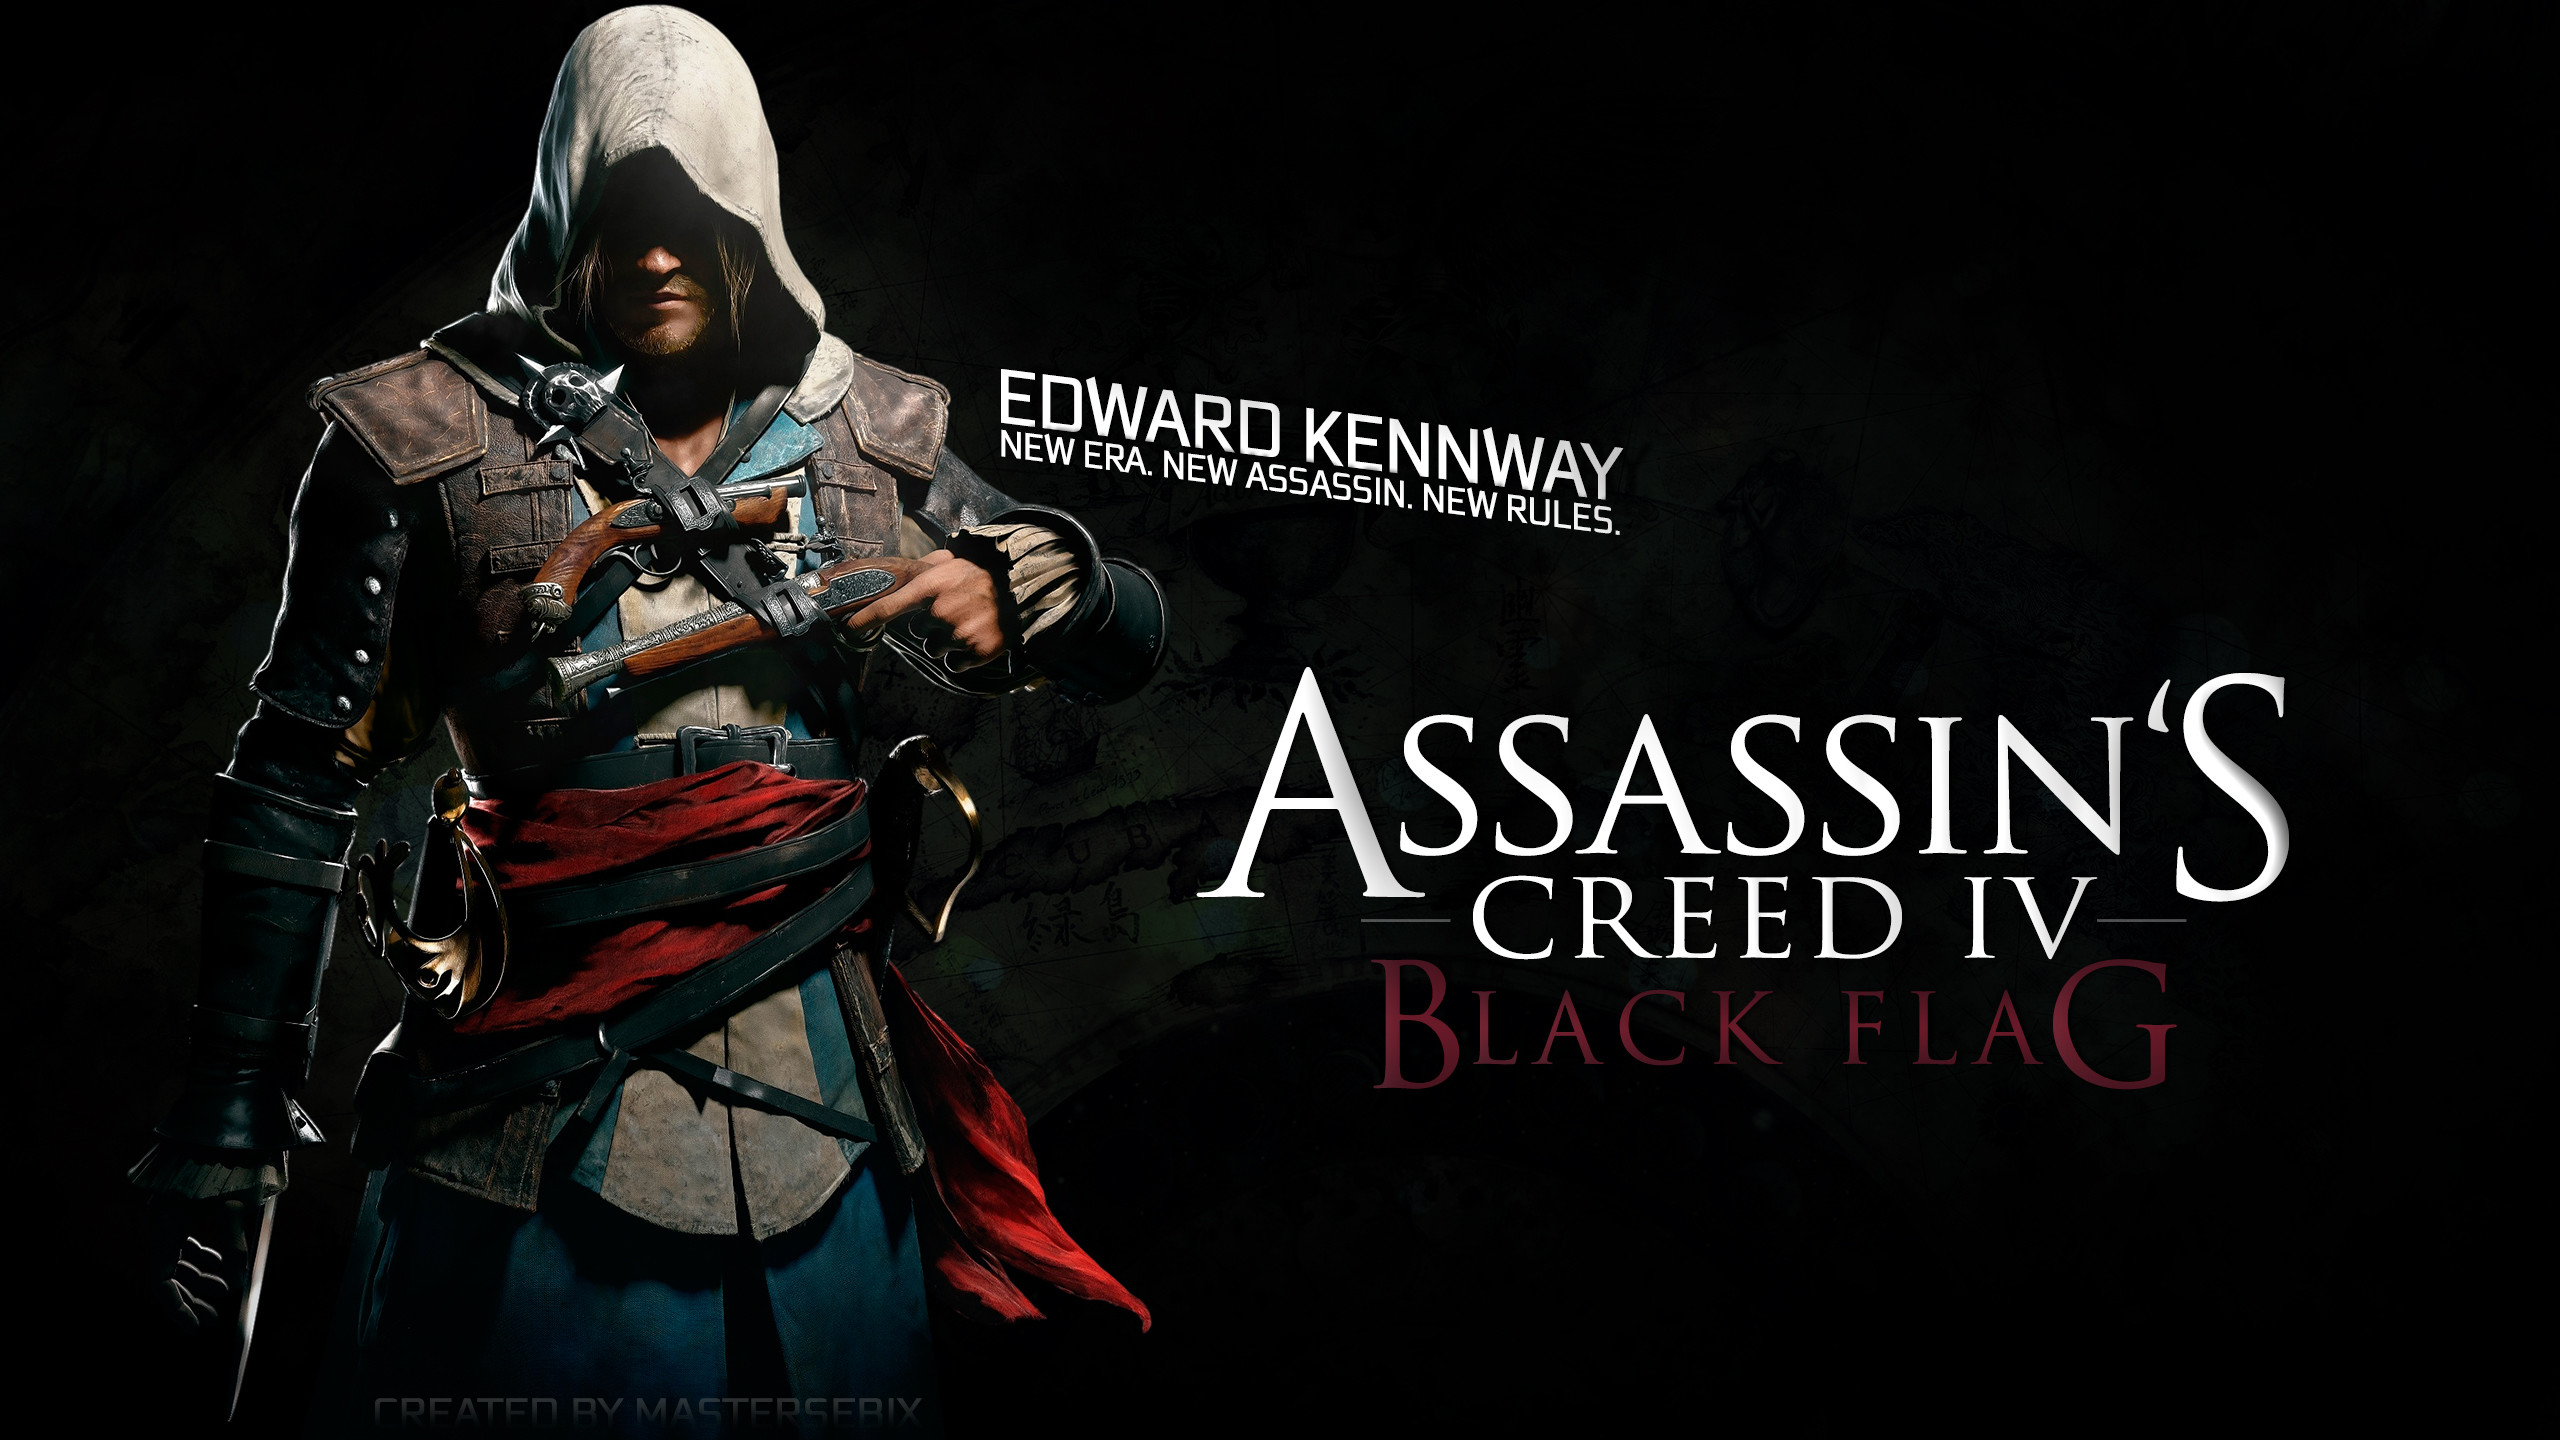 Assassin's creed IV new character